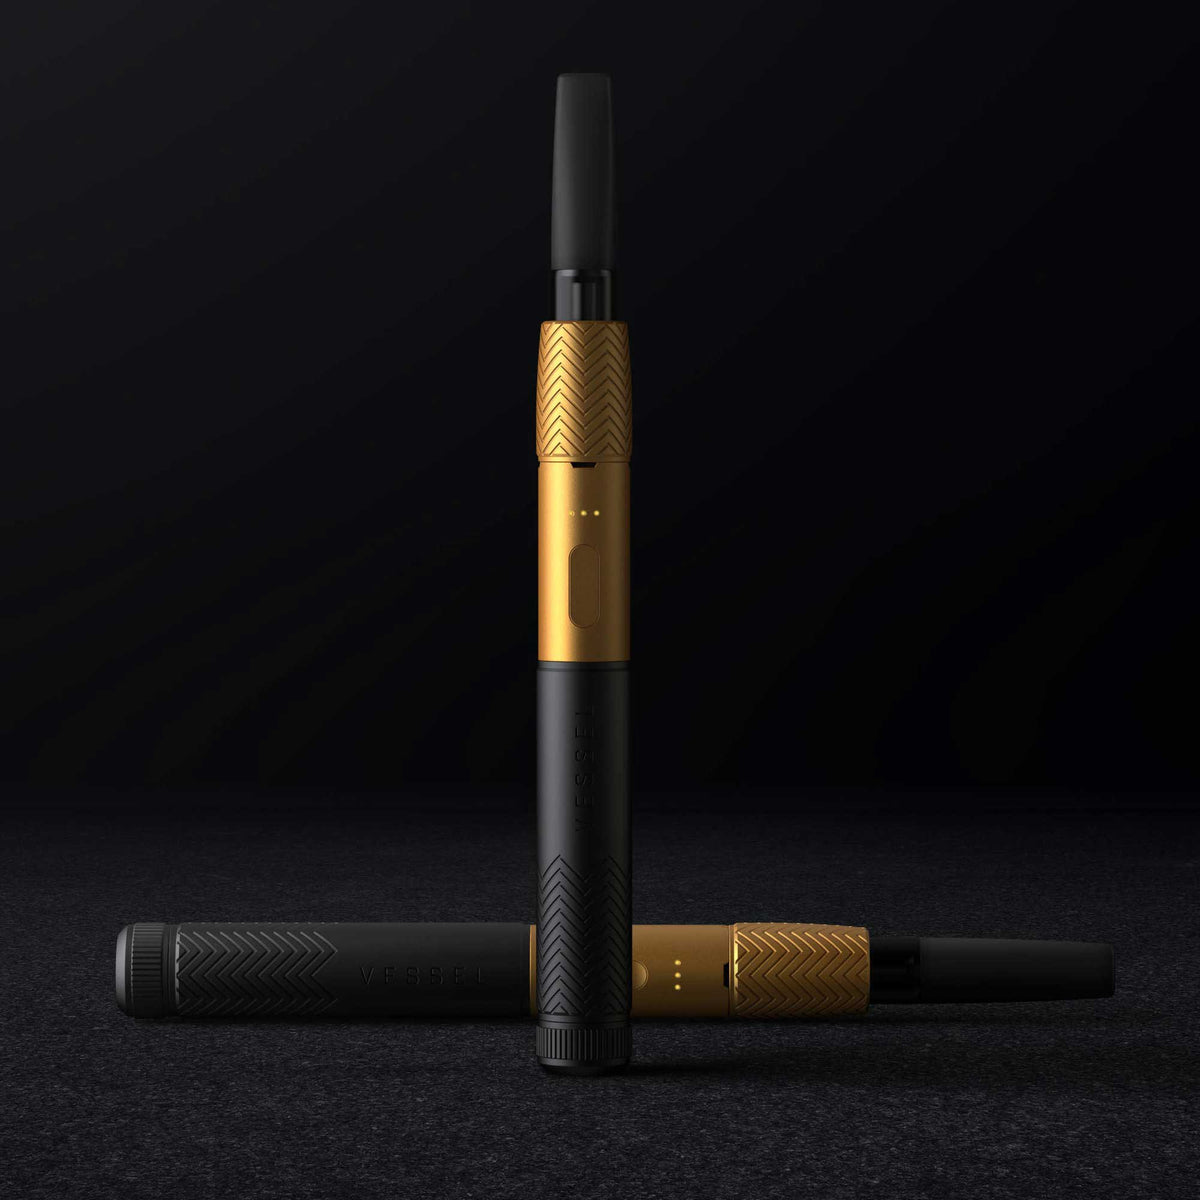 Two Black and Gold Vape Pen Batteries